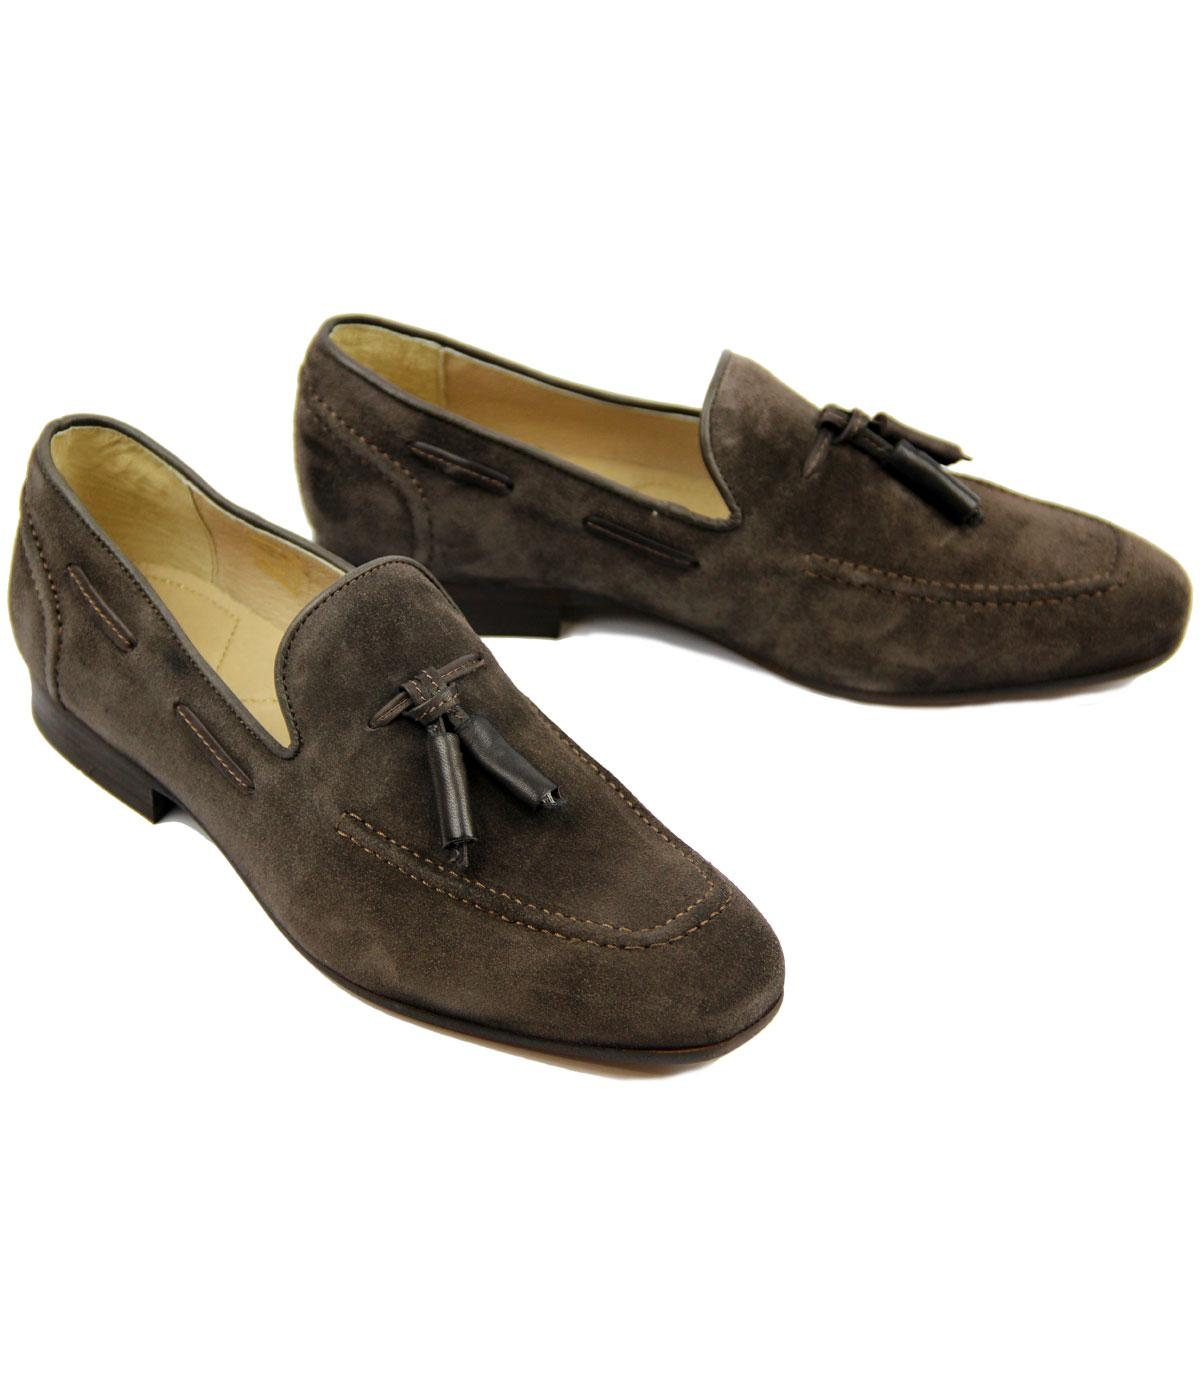 c77ec6ca576 H by HUDSON Pierre Retro 60s Mod Brown Suede Loafer Shoes